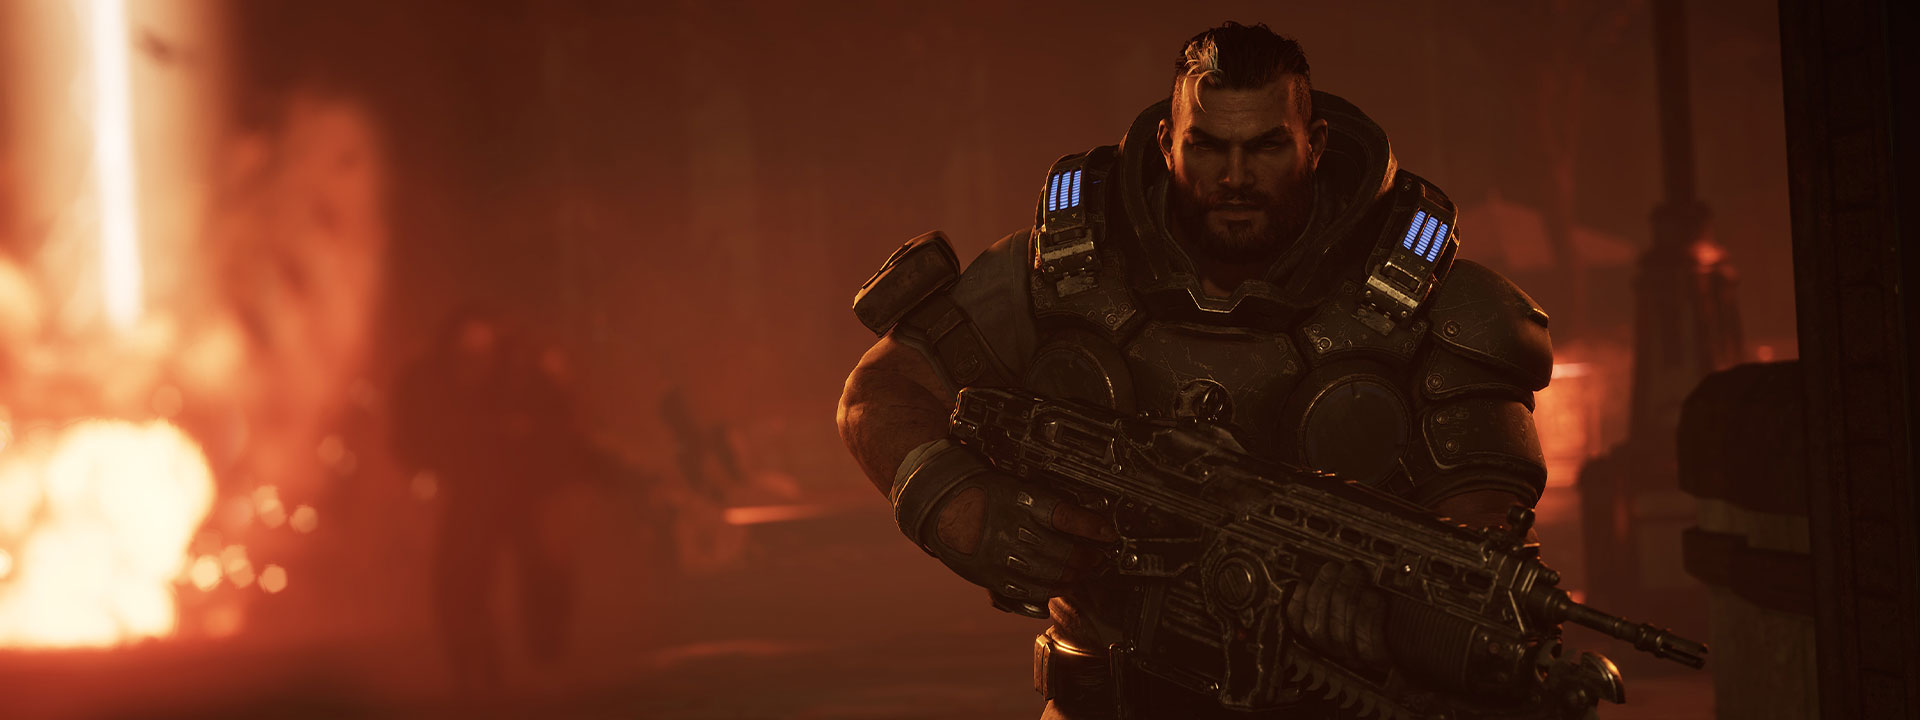 Gabe Diaz from Gears Tactics in full armor going away from an explosion